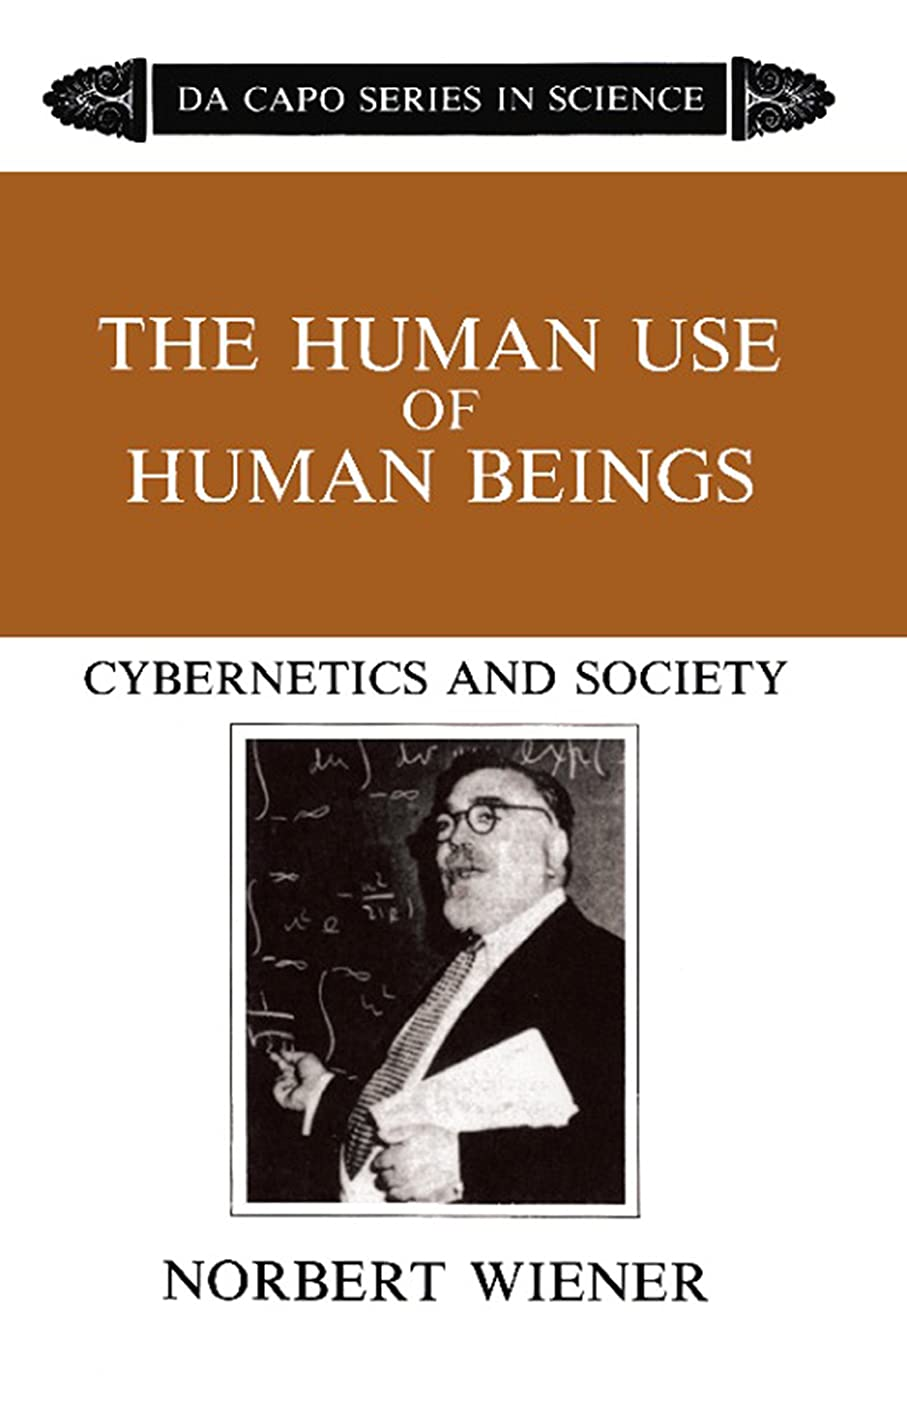 ペデスタルインセンティブ父方のThe Human Use Of Human Beings: Cybernetics And Society (English Edition)